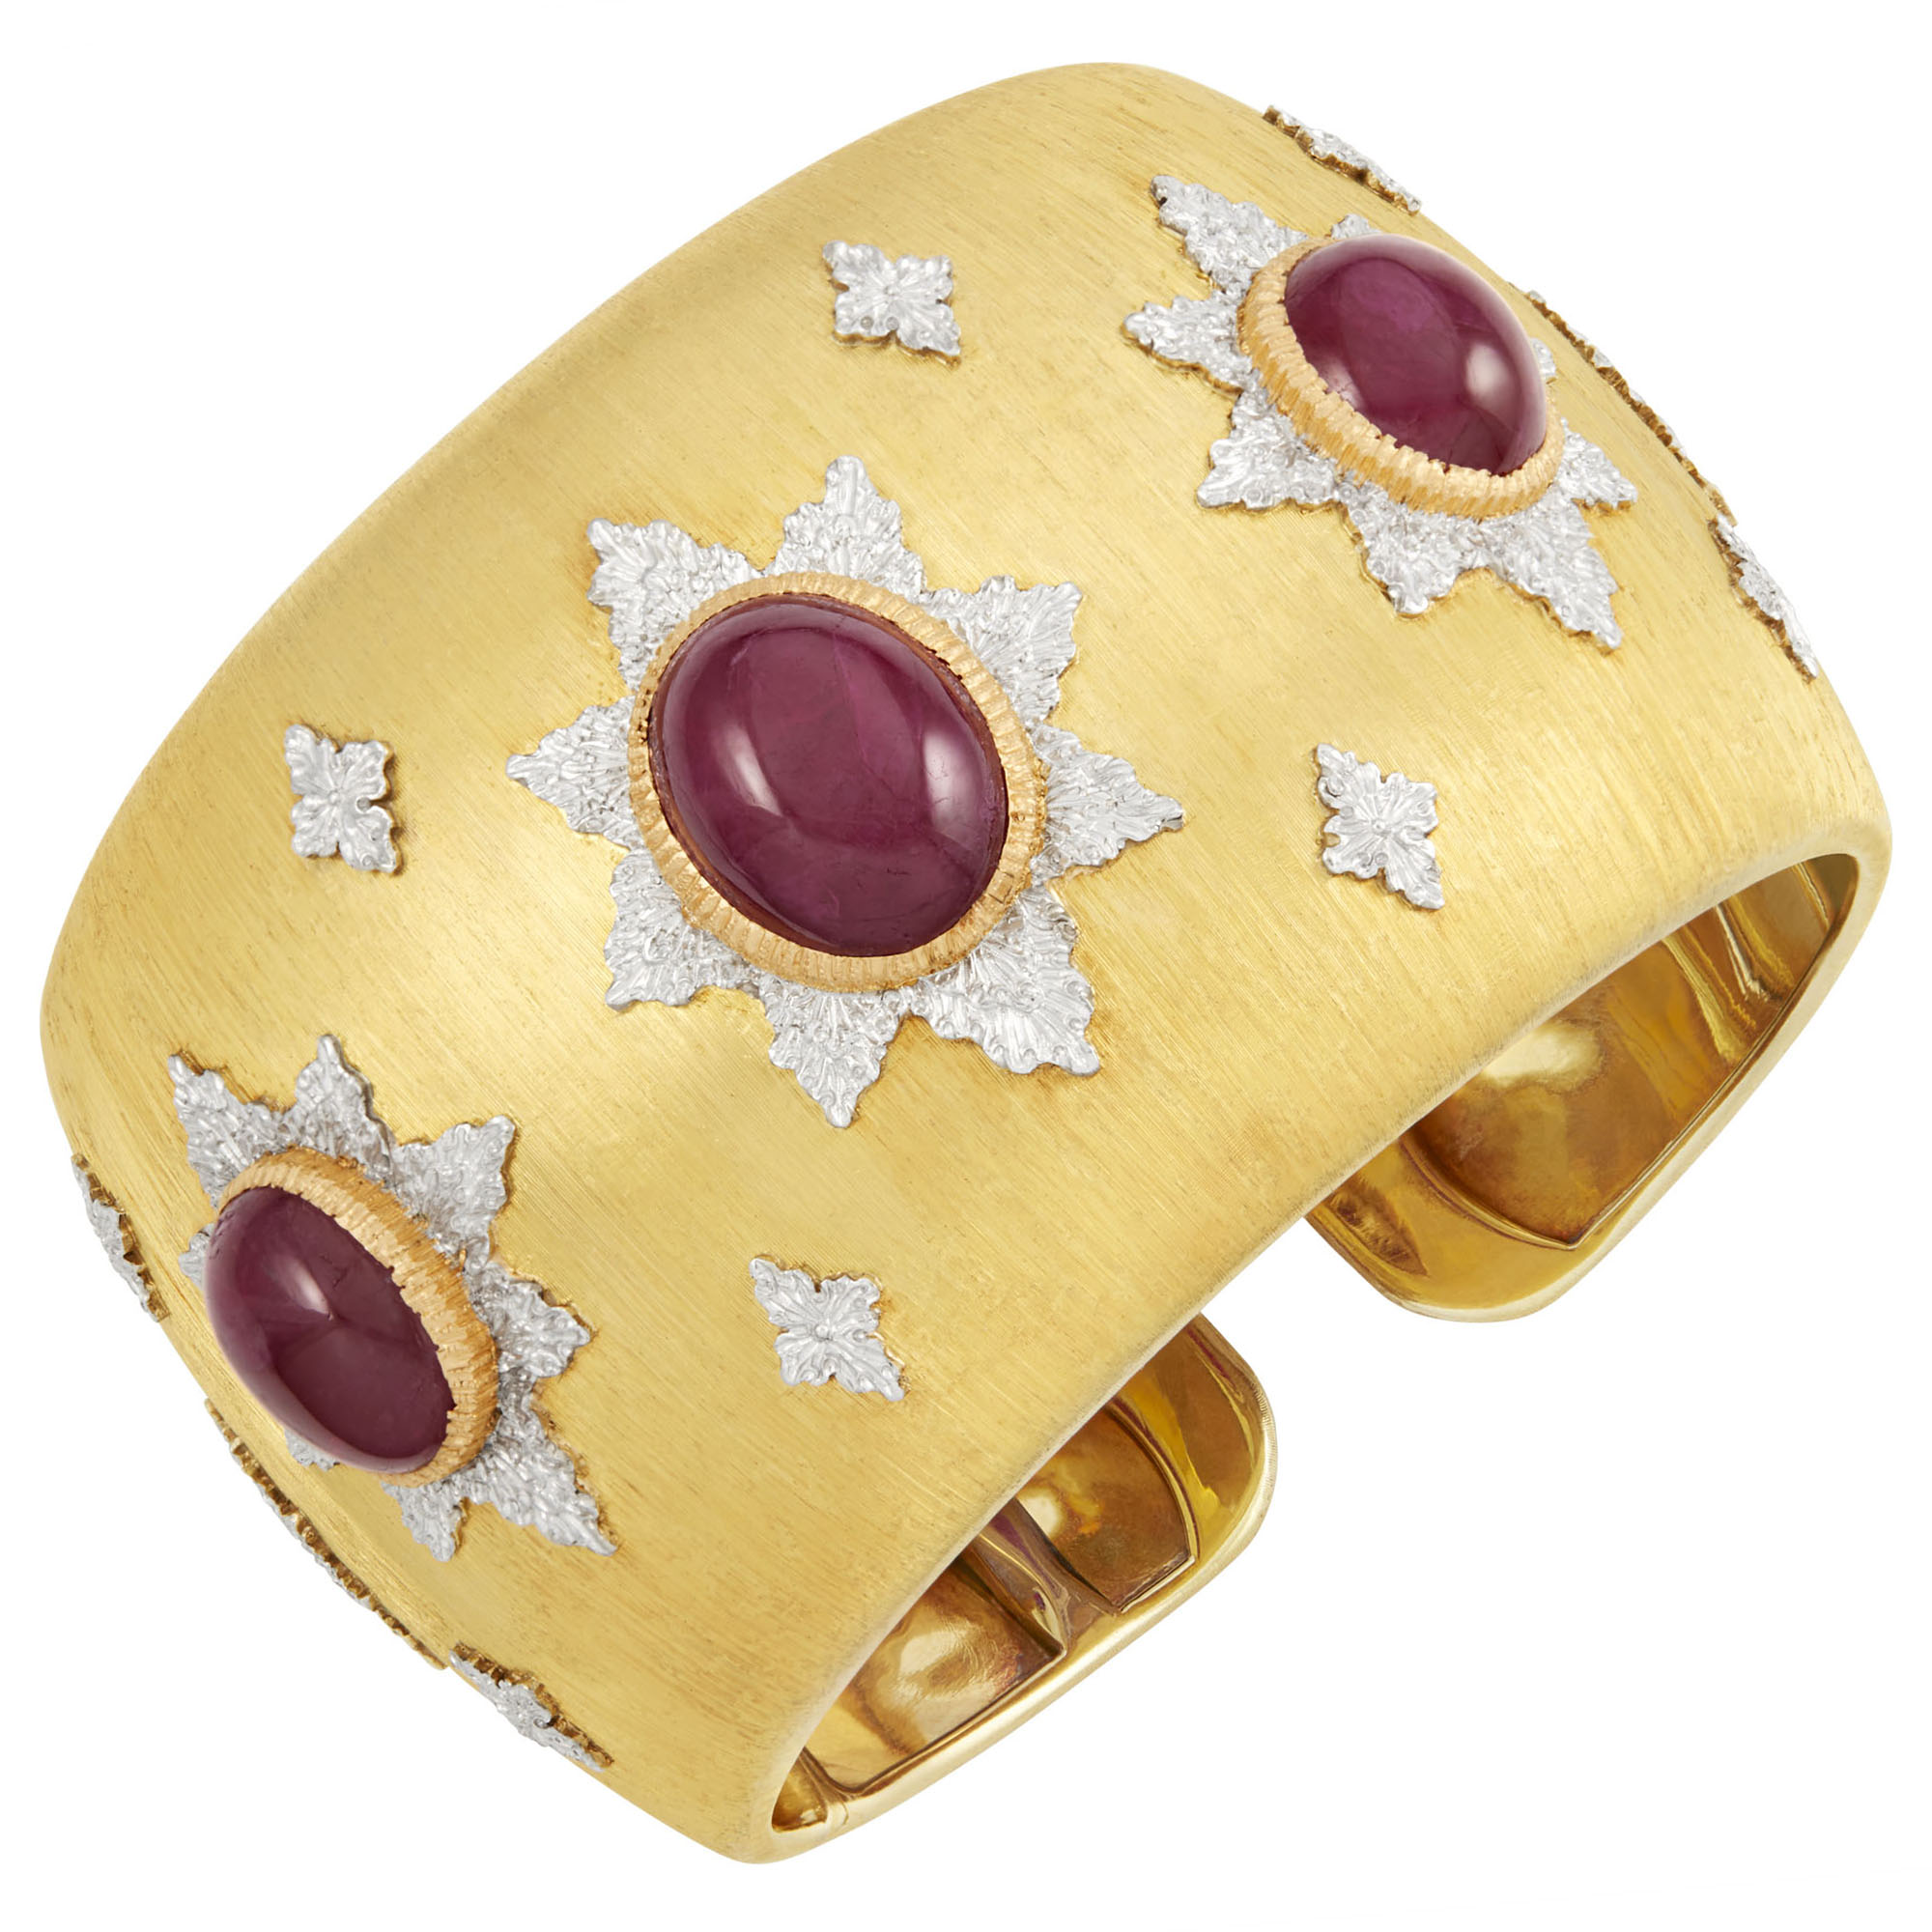 Lot image - Gold and Cabochon Ruby Cuff Bracelet, Buccellati